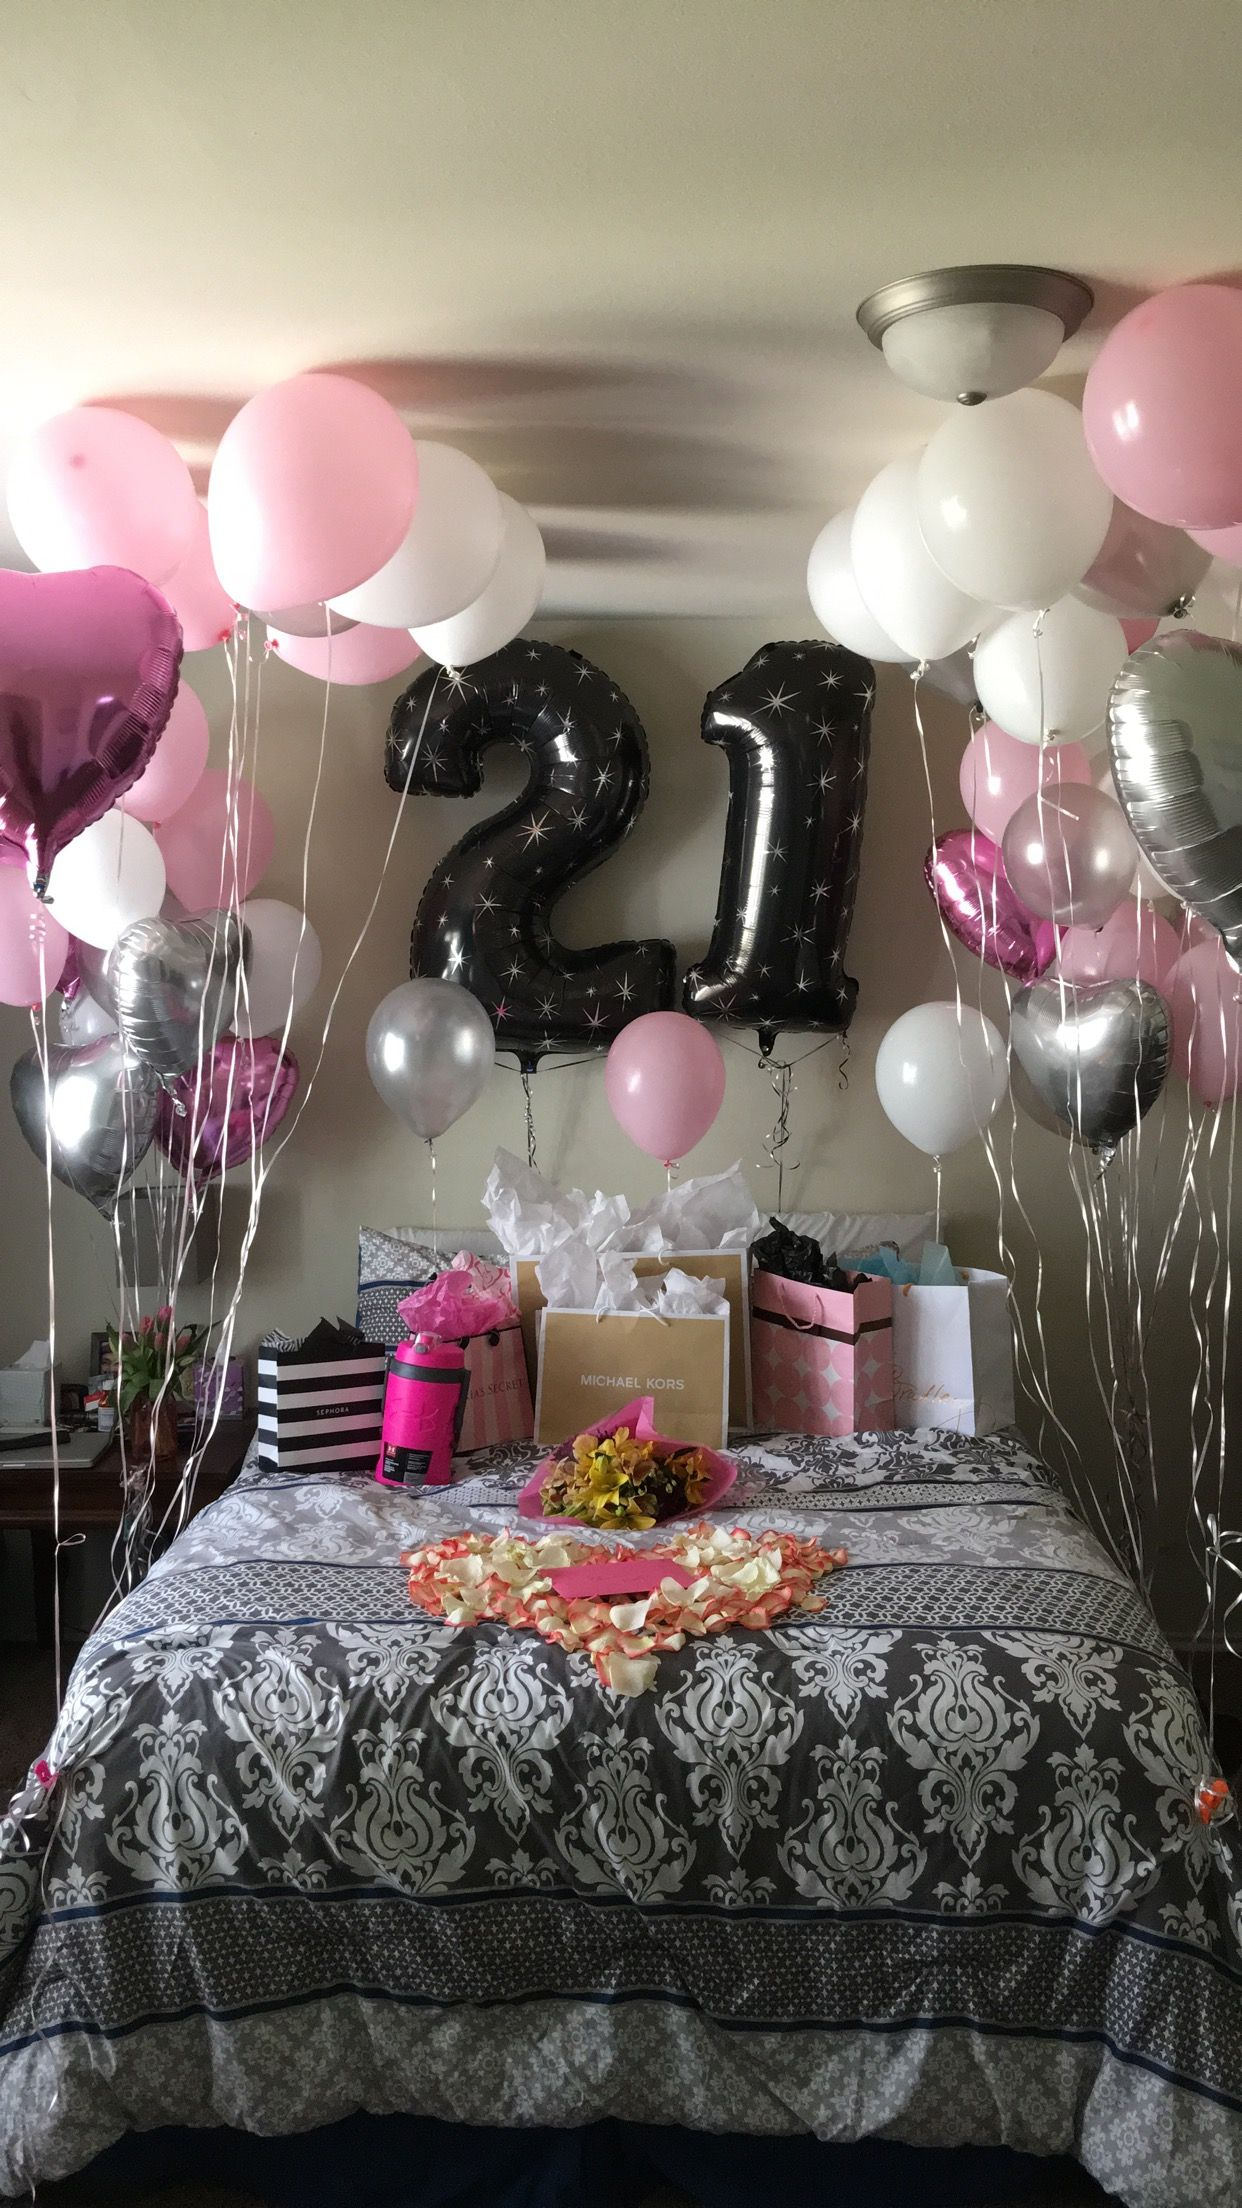 21st birthday surprise girlfriends birthday pinterest for Room decor ideas for birthday